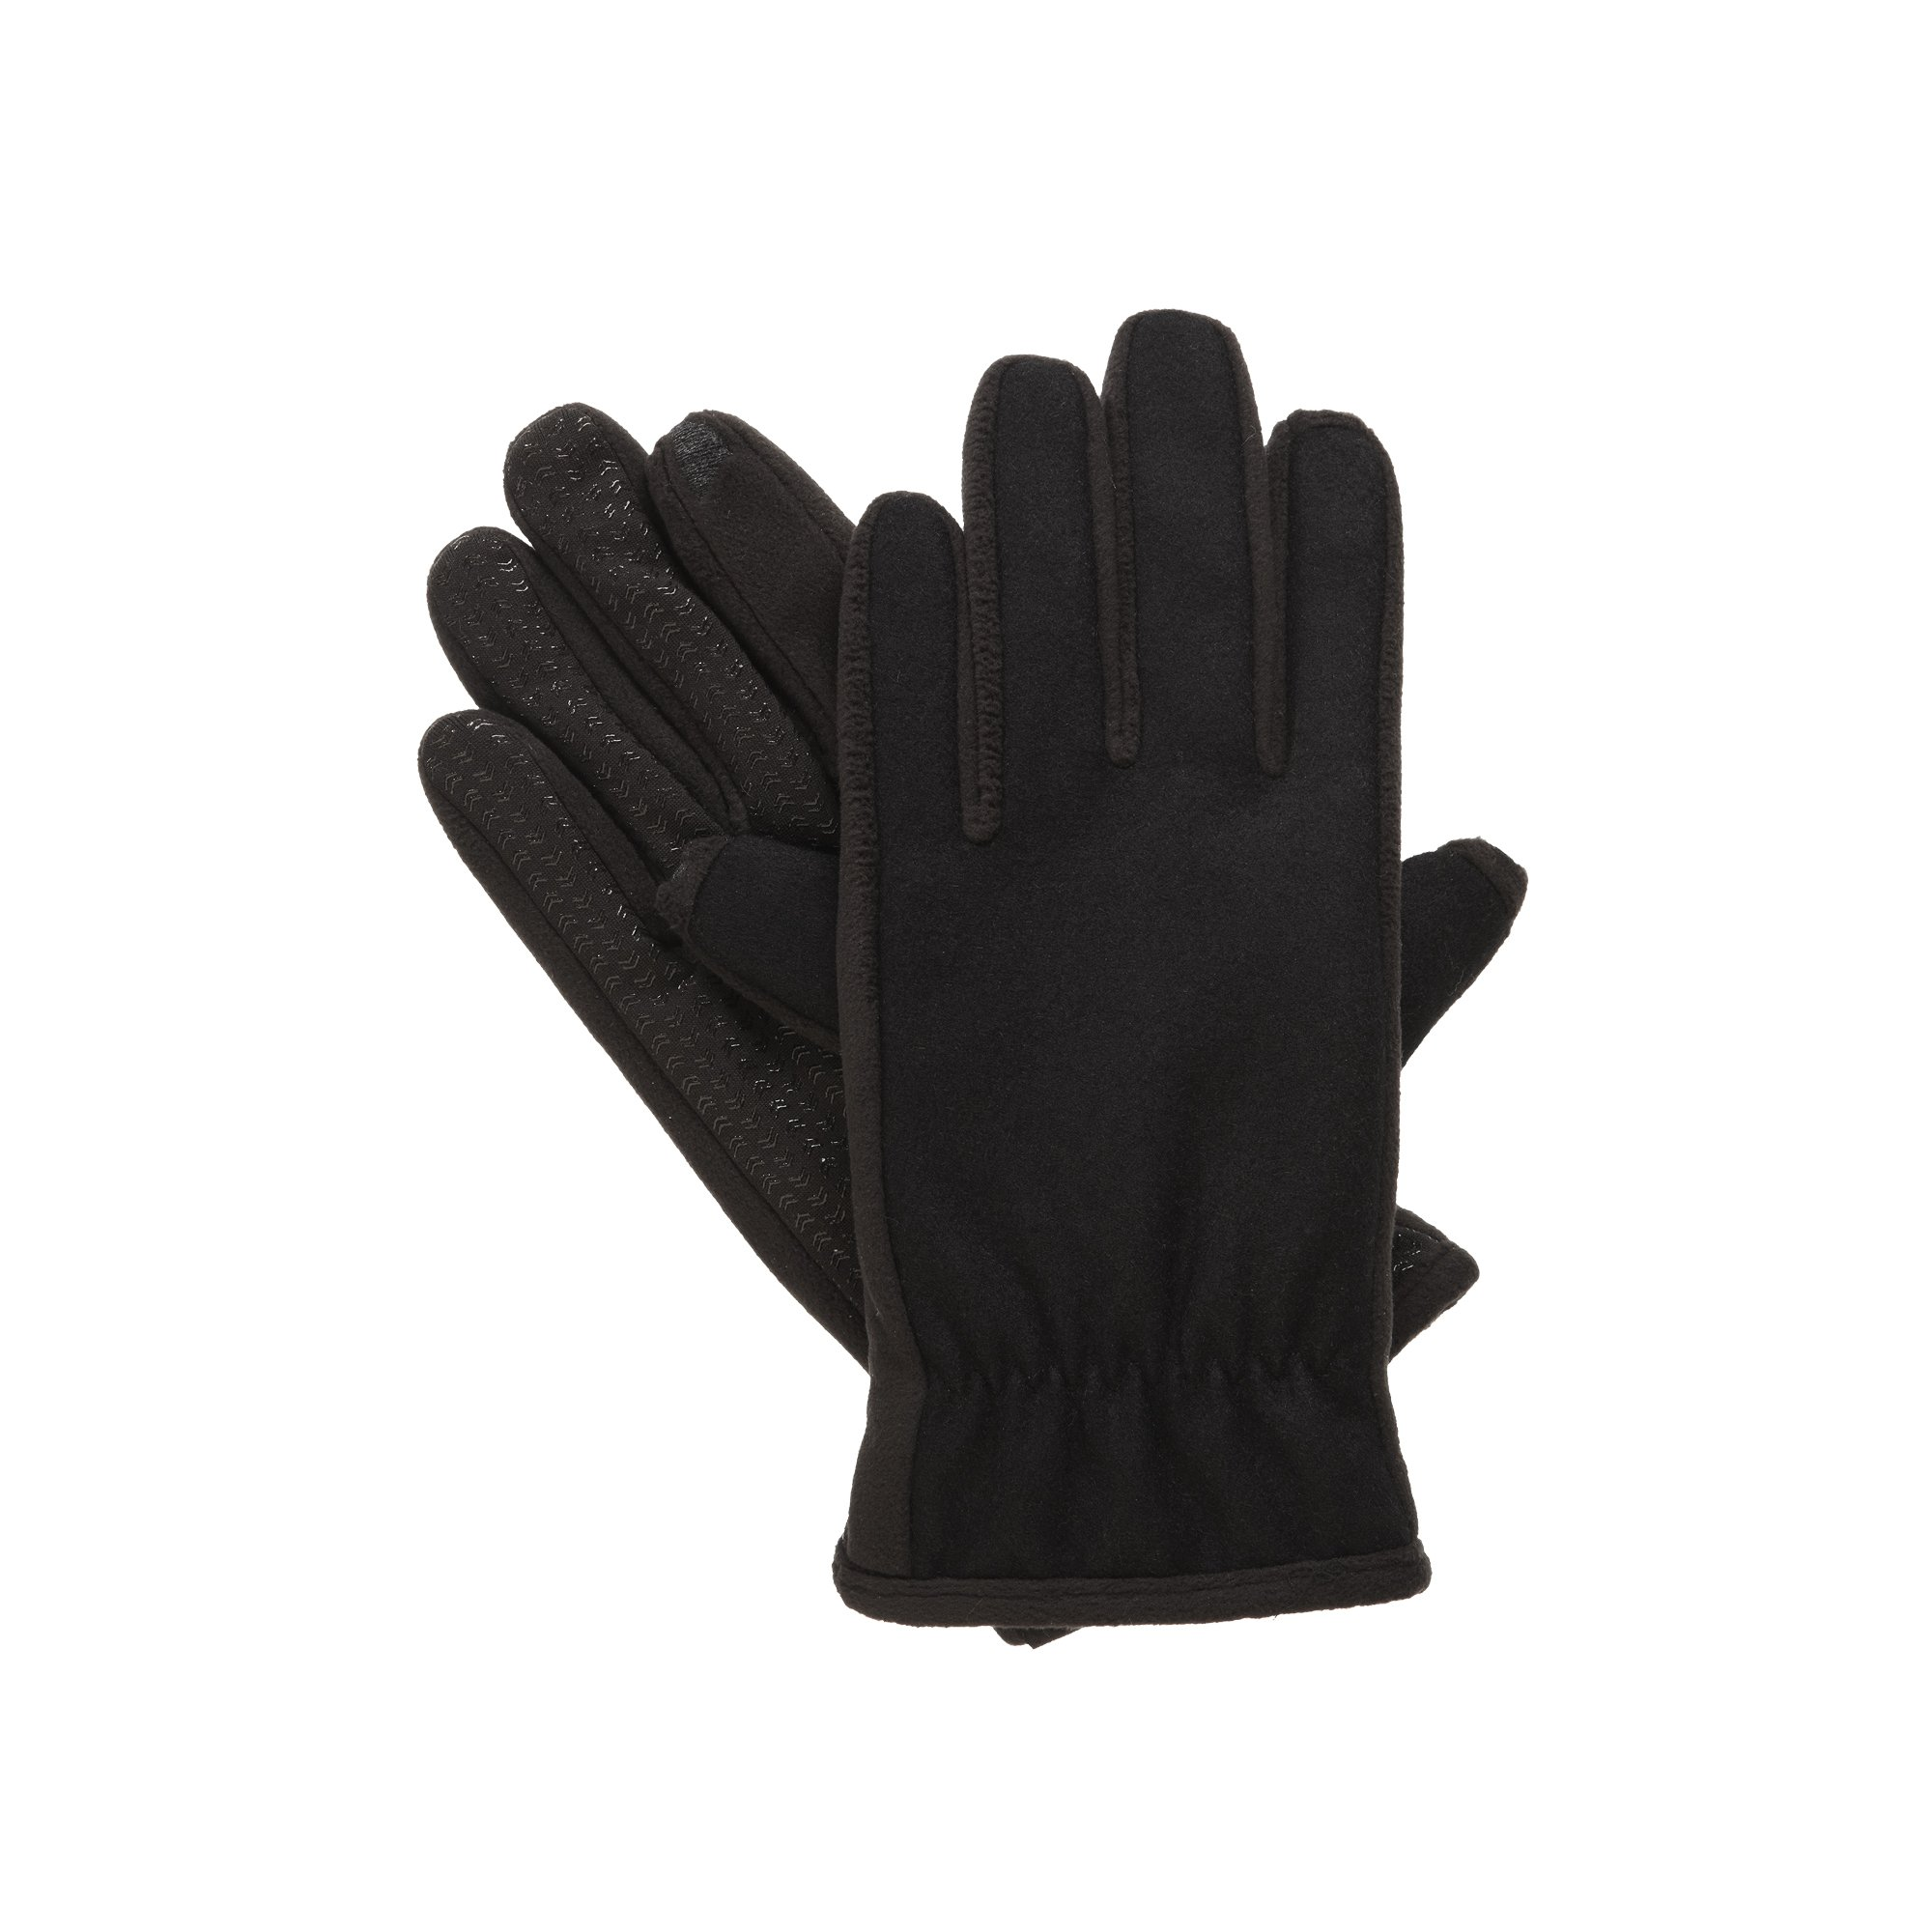 ISOTONER SmarTouch Wool Back Glove w/DTM Embroidery (THERMAflex)